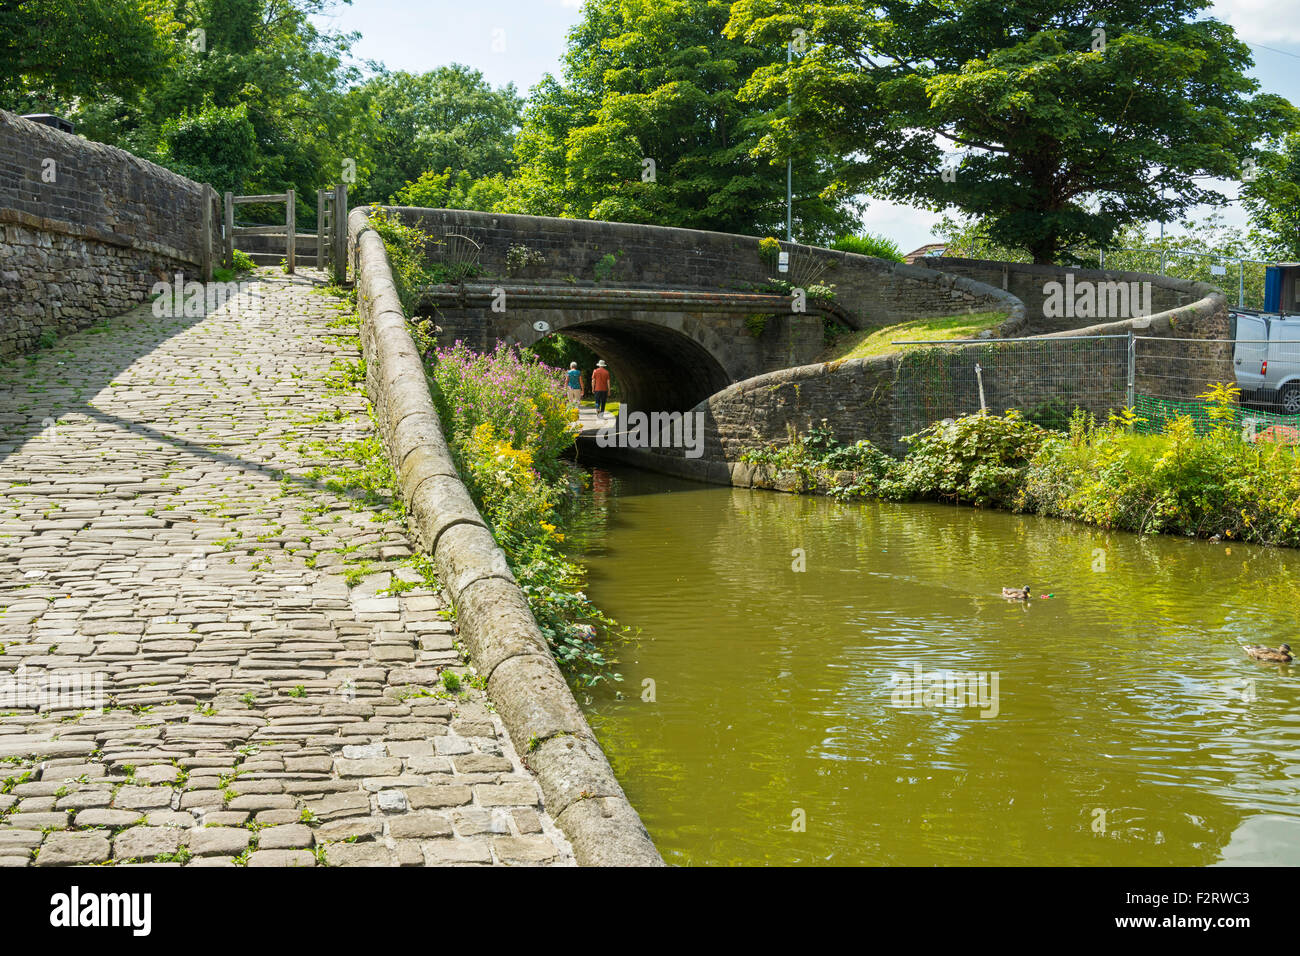 A roving bridge on the Macclesfield canal near Marple, Gtr. Manchester, England, UK. Also called changeline or turnover - Stock Image